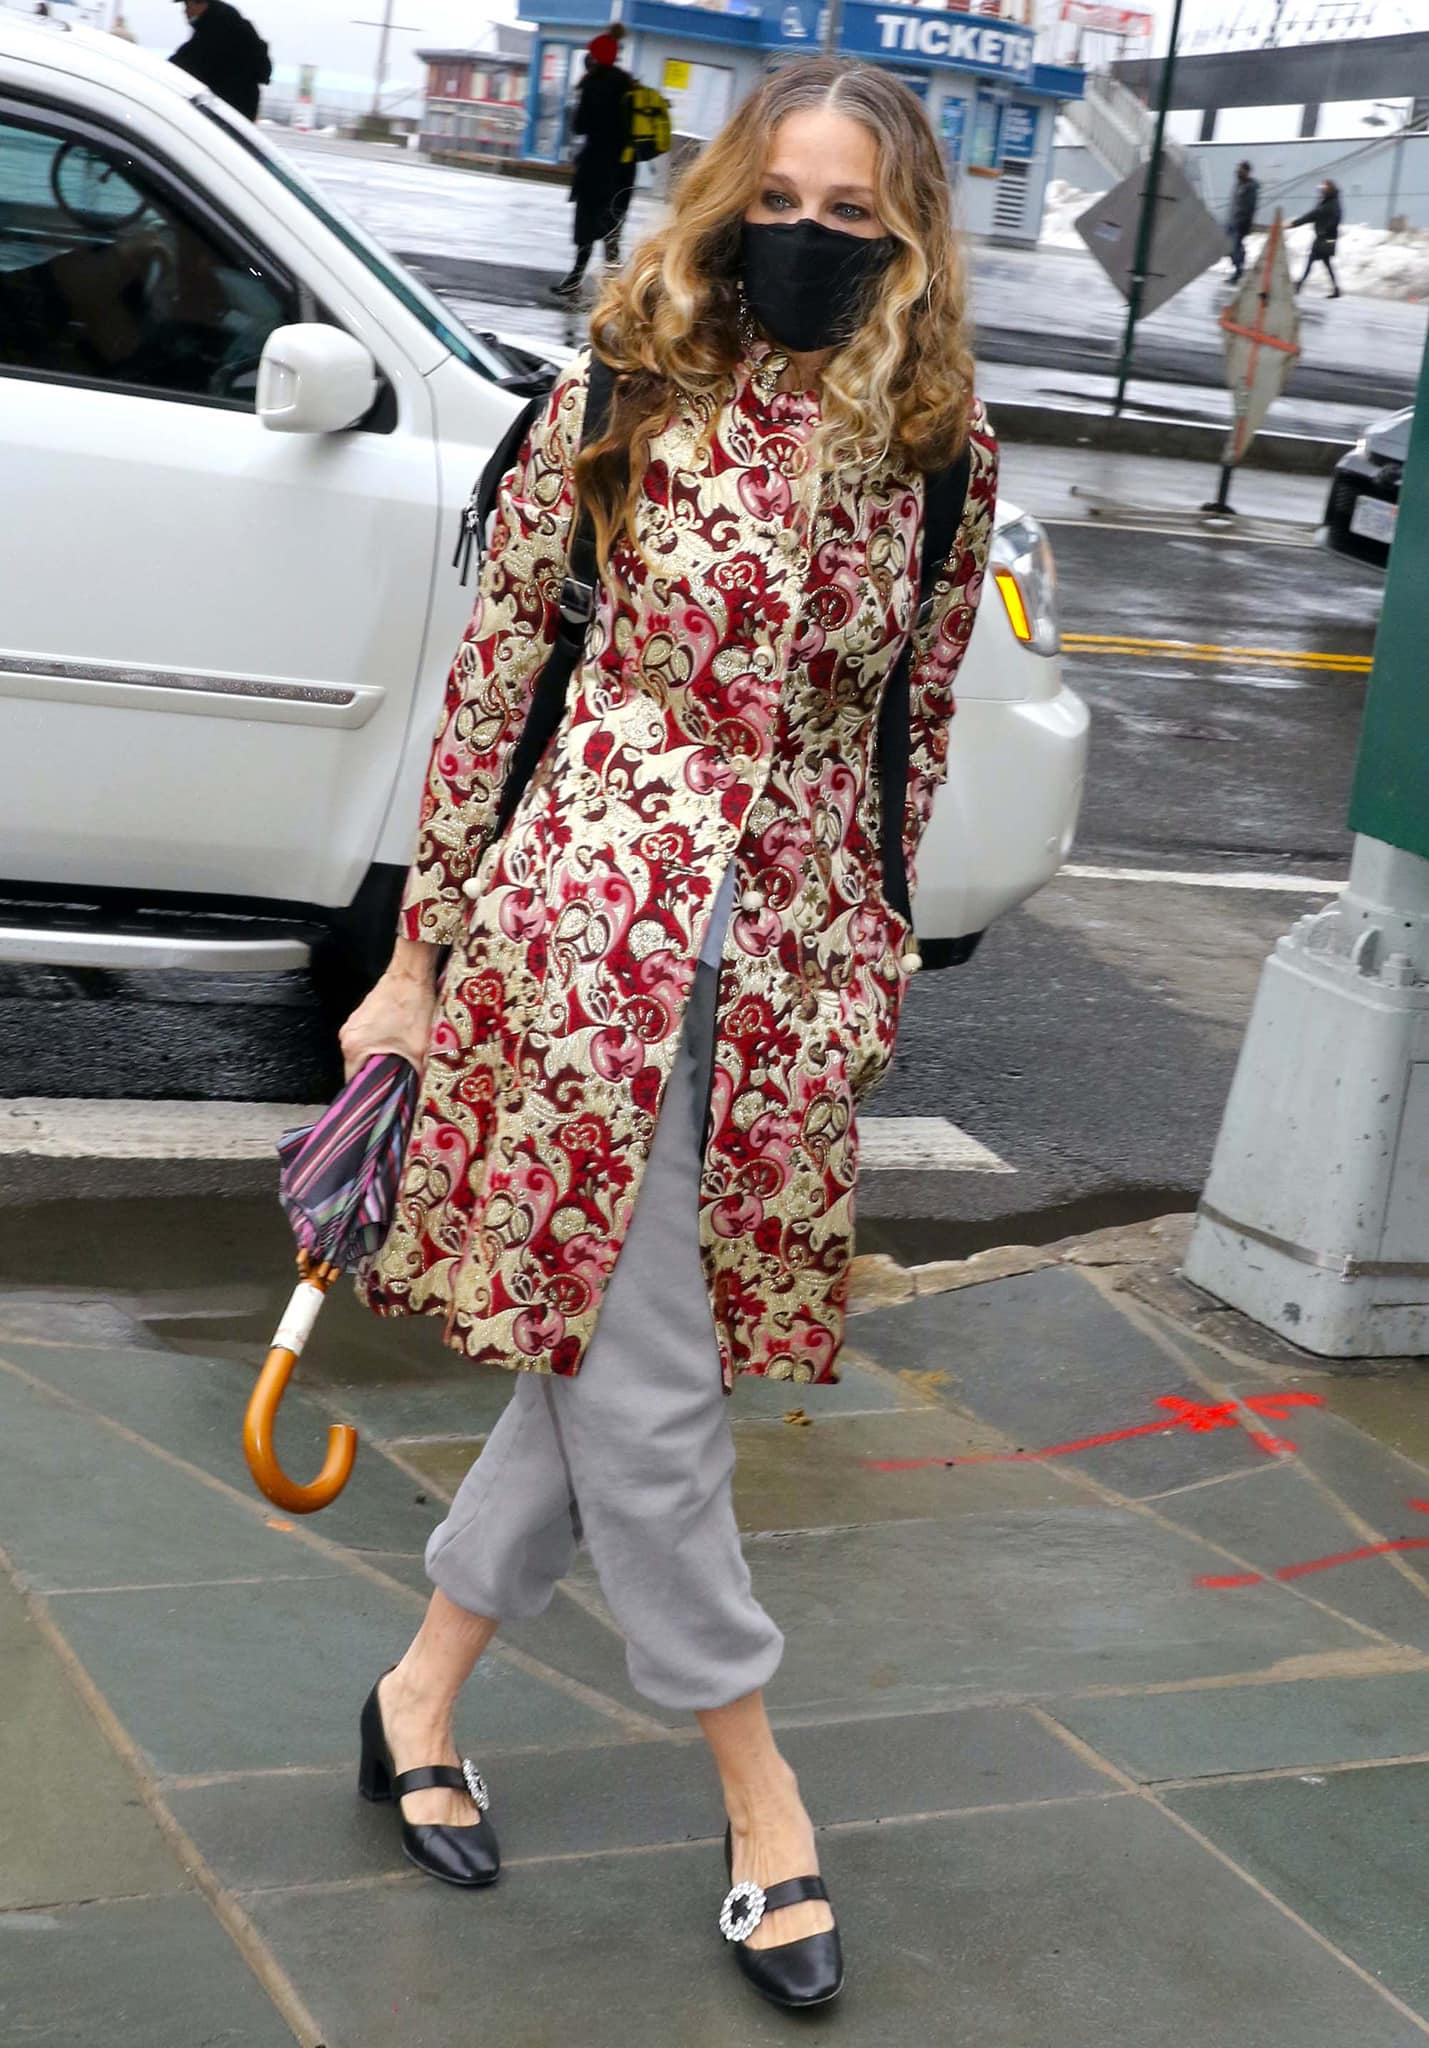 Sarah Jessica Parker visits her South Street Seaport store in an oriental-style embroidered coat